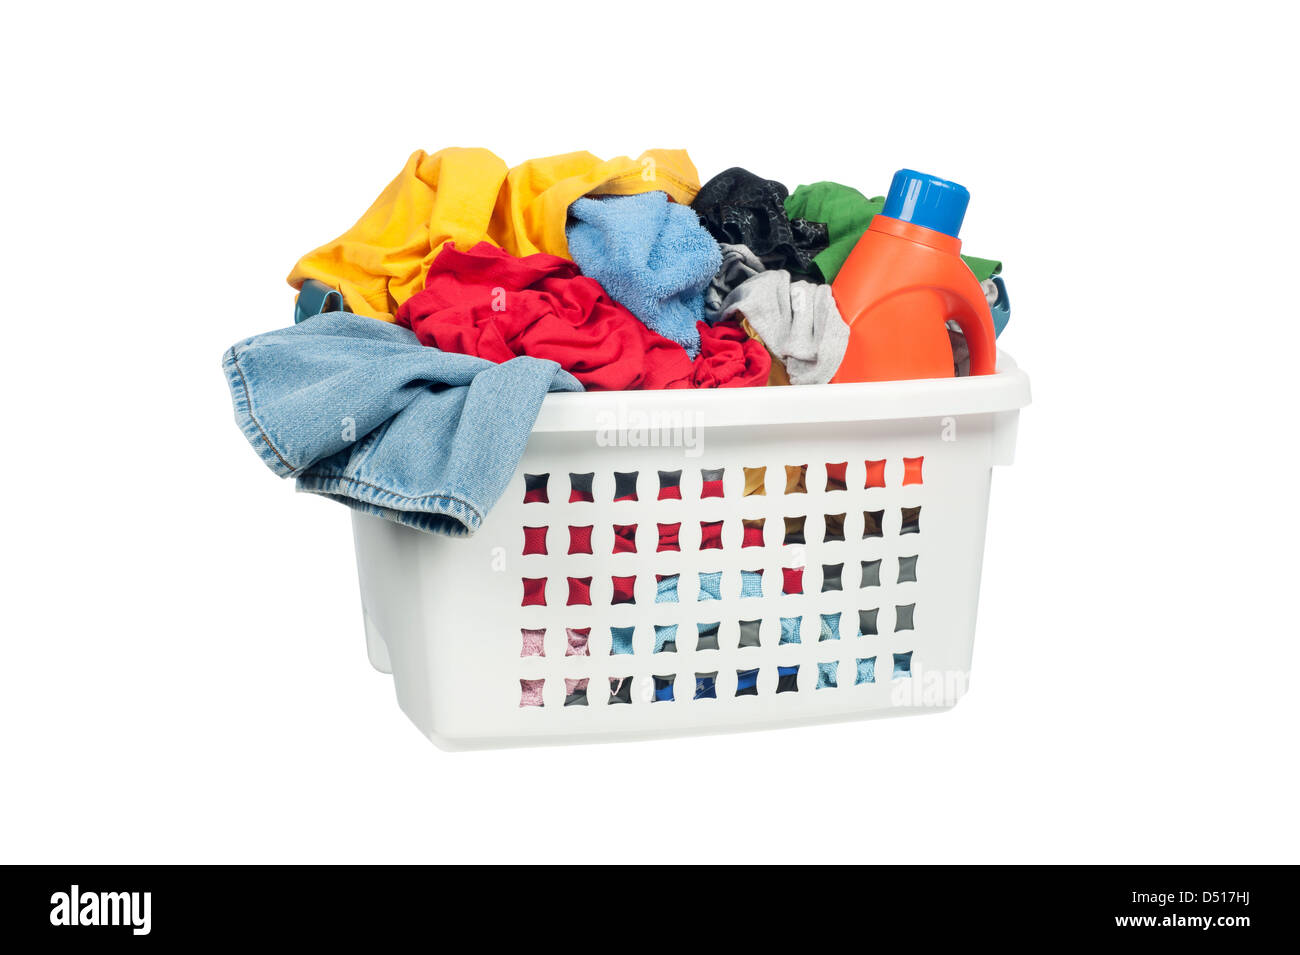 White laundry basket full of colorful clothing and a bottle of cleaning detergent. - Stock Image